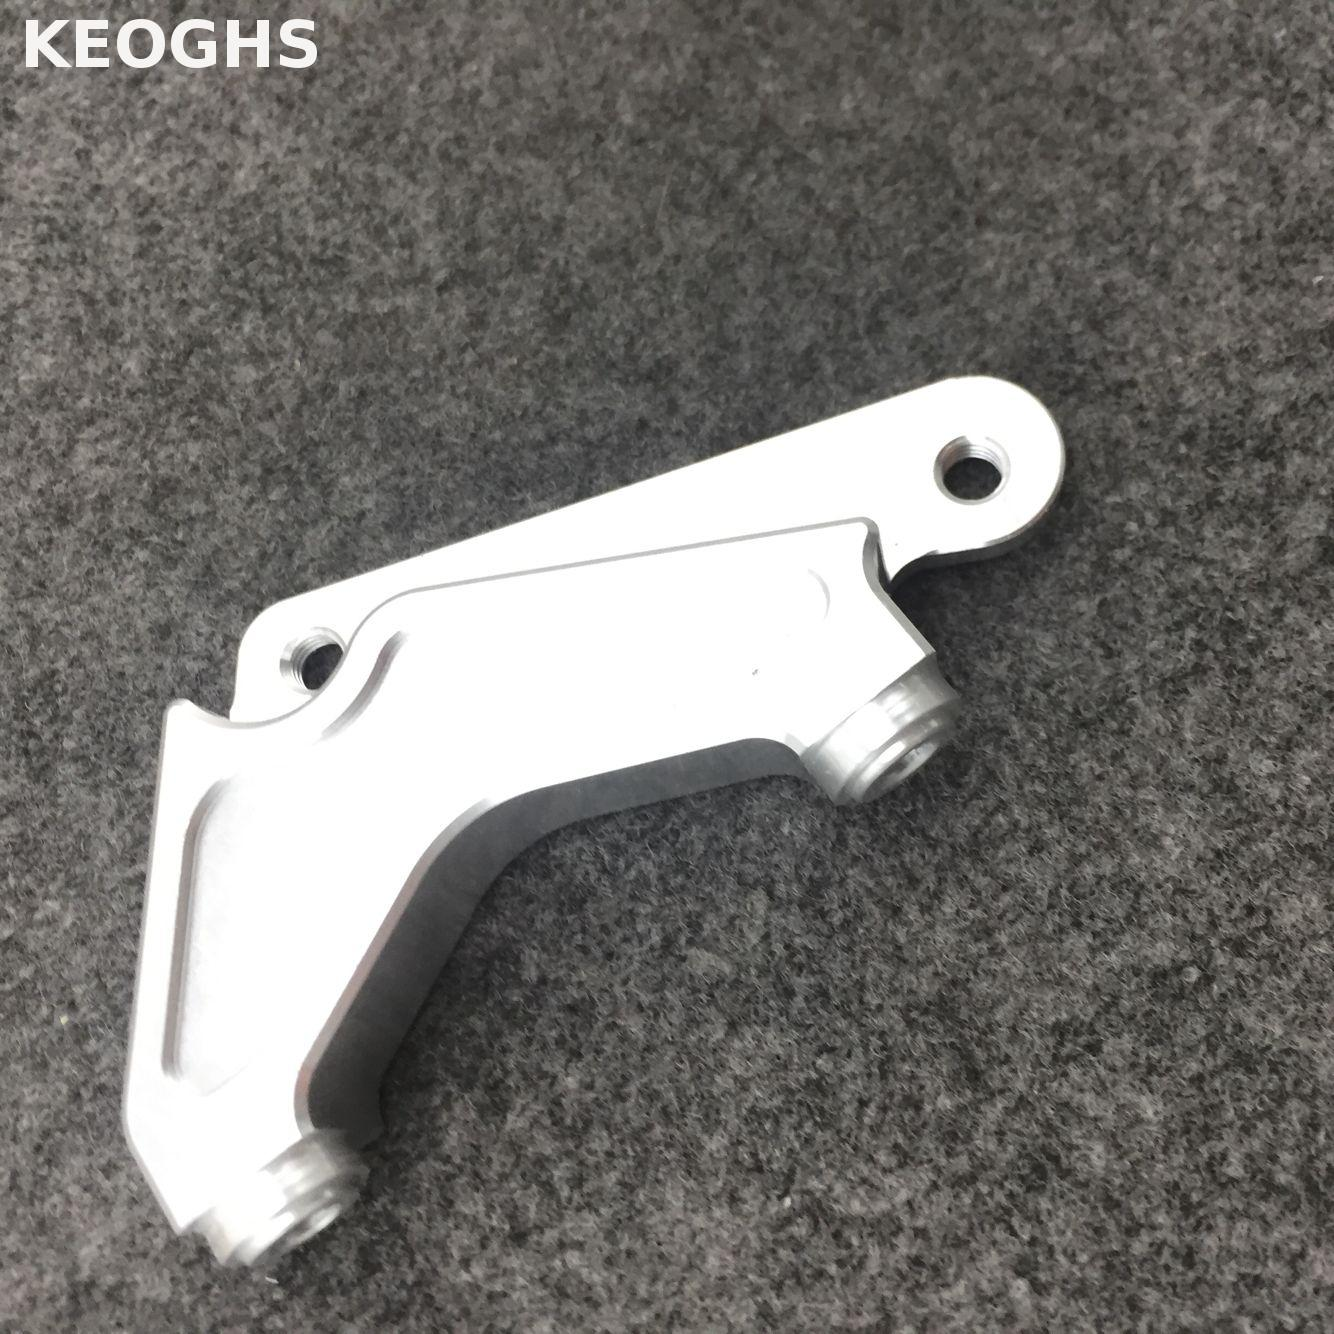 Keoghs Motorcycle Cnc Brake Caliper Bracket/adapter For 82mm Brake Caliper 200mm Brake Disc And Original Fork For Honda Dio keoghs real adelin 260mm floating brake disc high quality for yamaha scooter cygnus modify